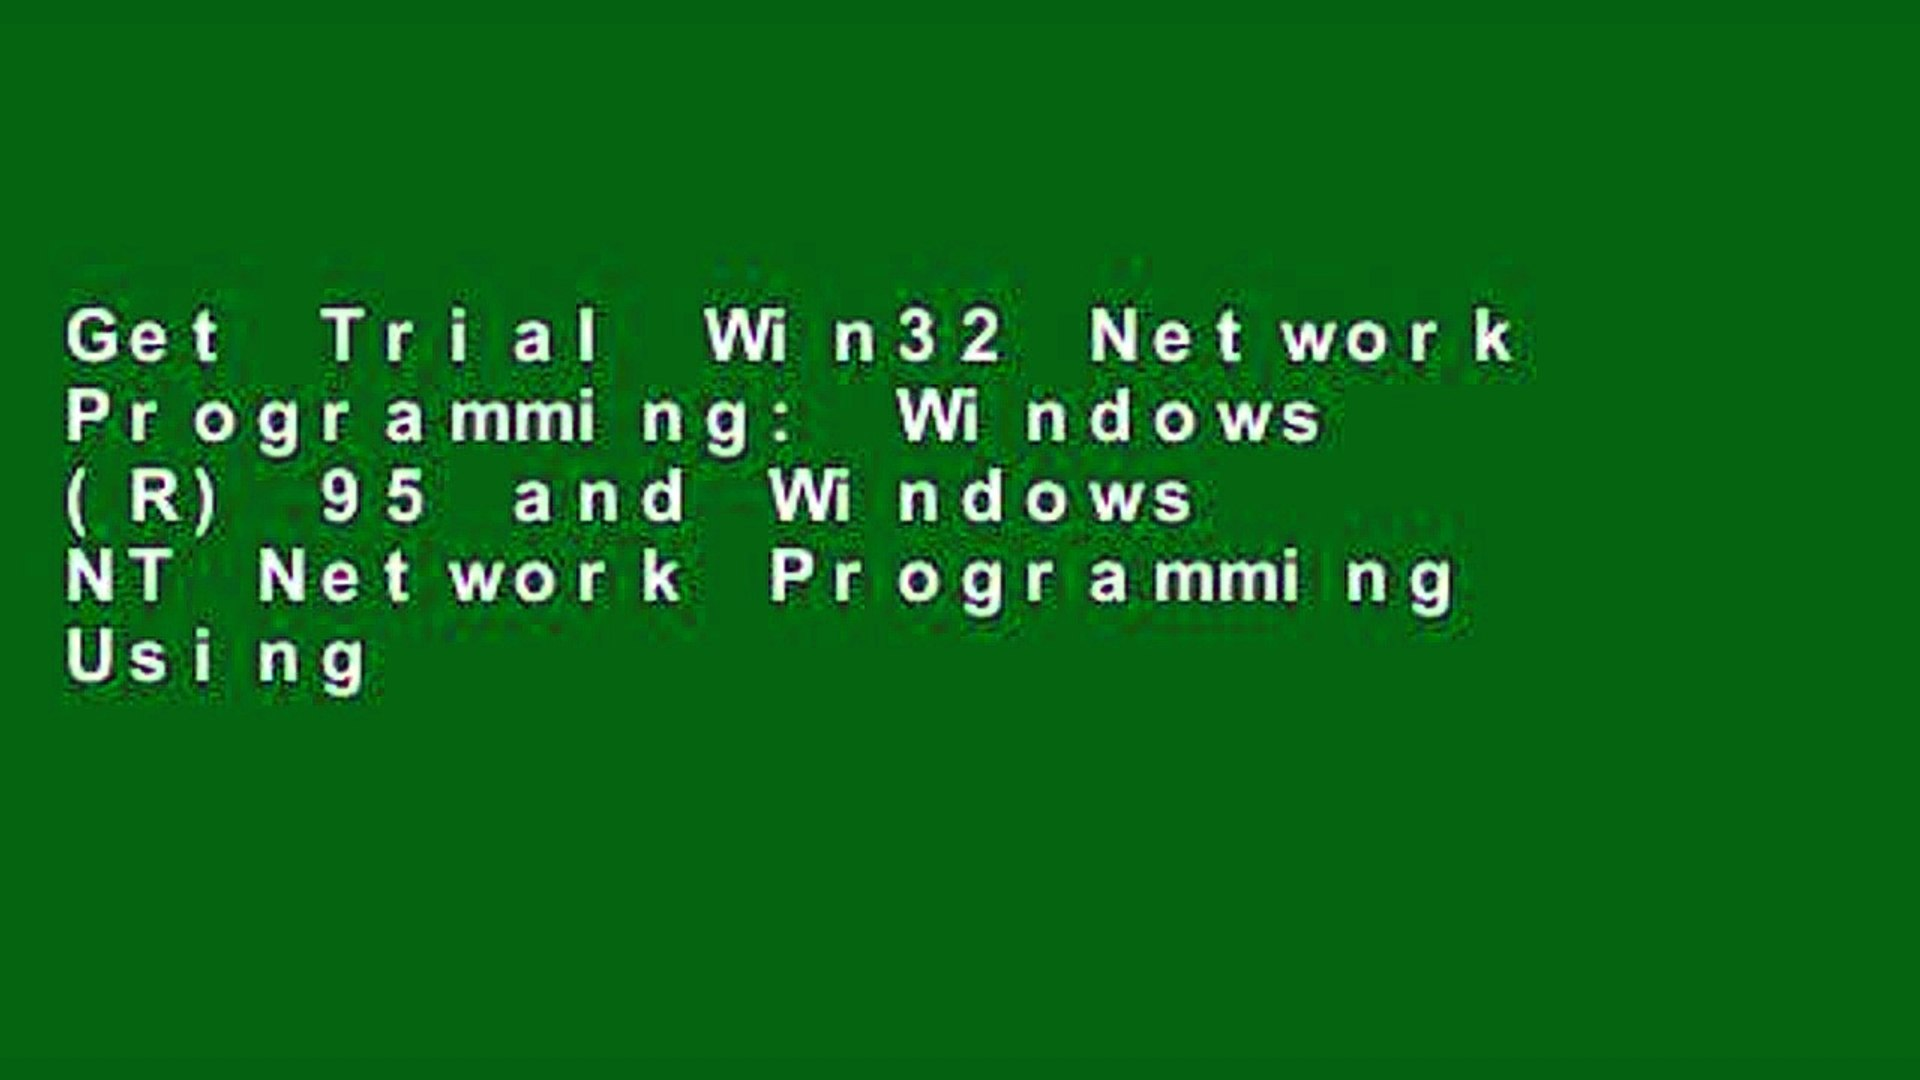 Get Trial Win32 Network Programming: Windows (R) 95 and Windows NT Network  Programming Using MFC: